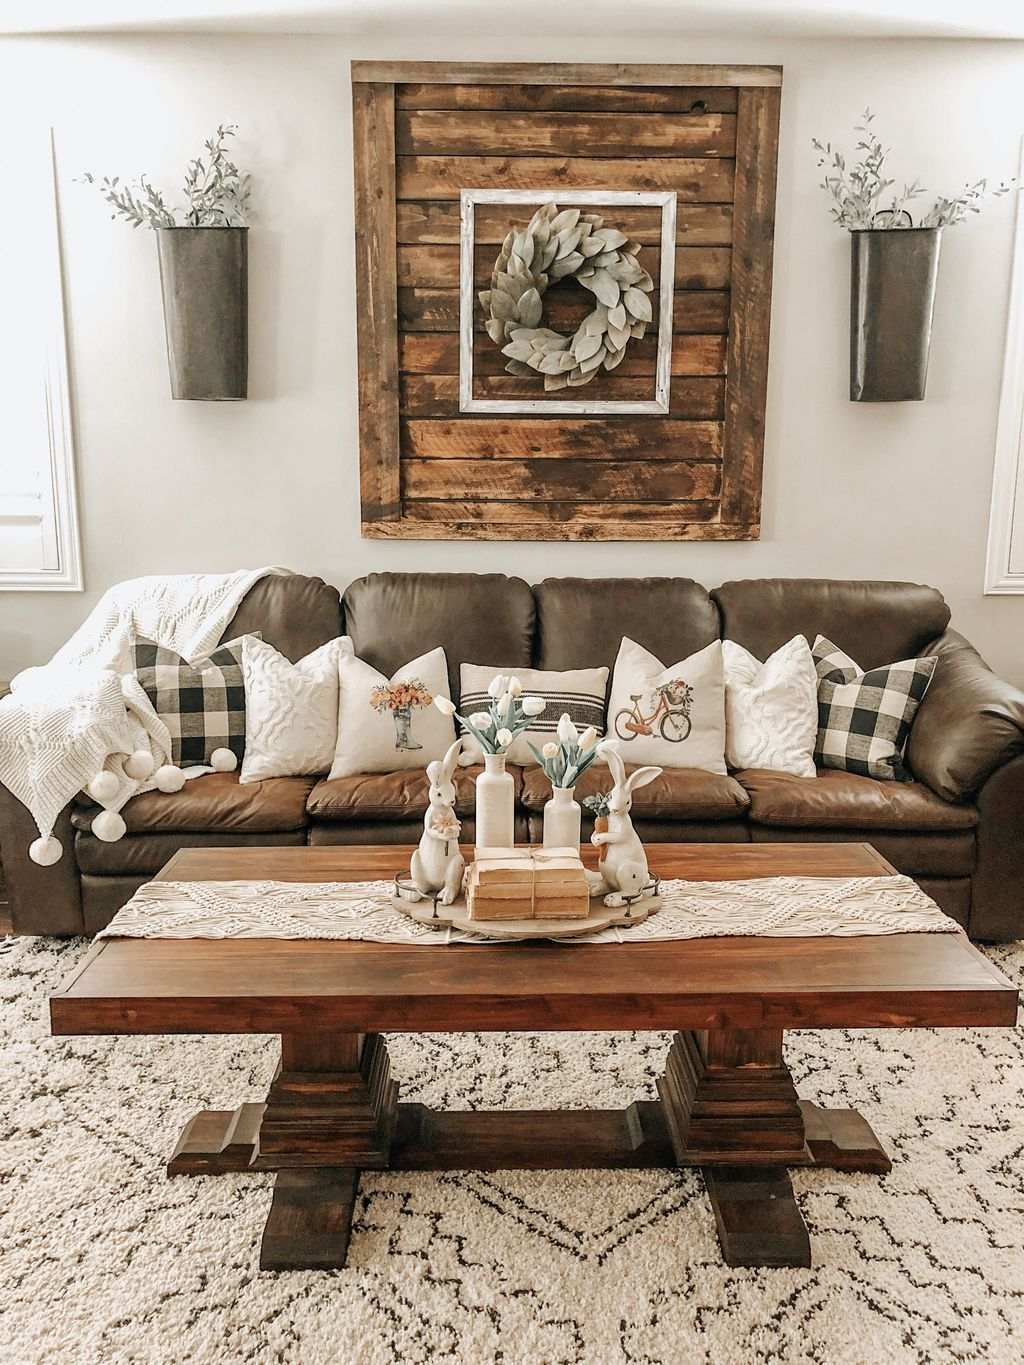 Rustic Country Living Room Rustic Living Room Design Country